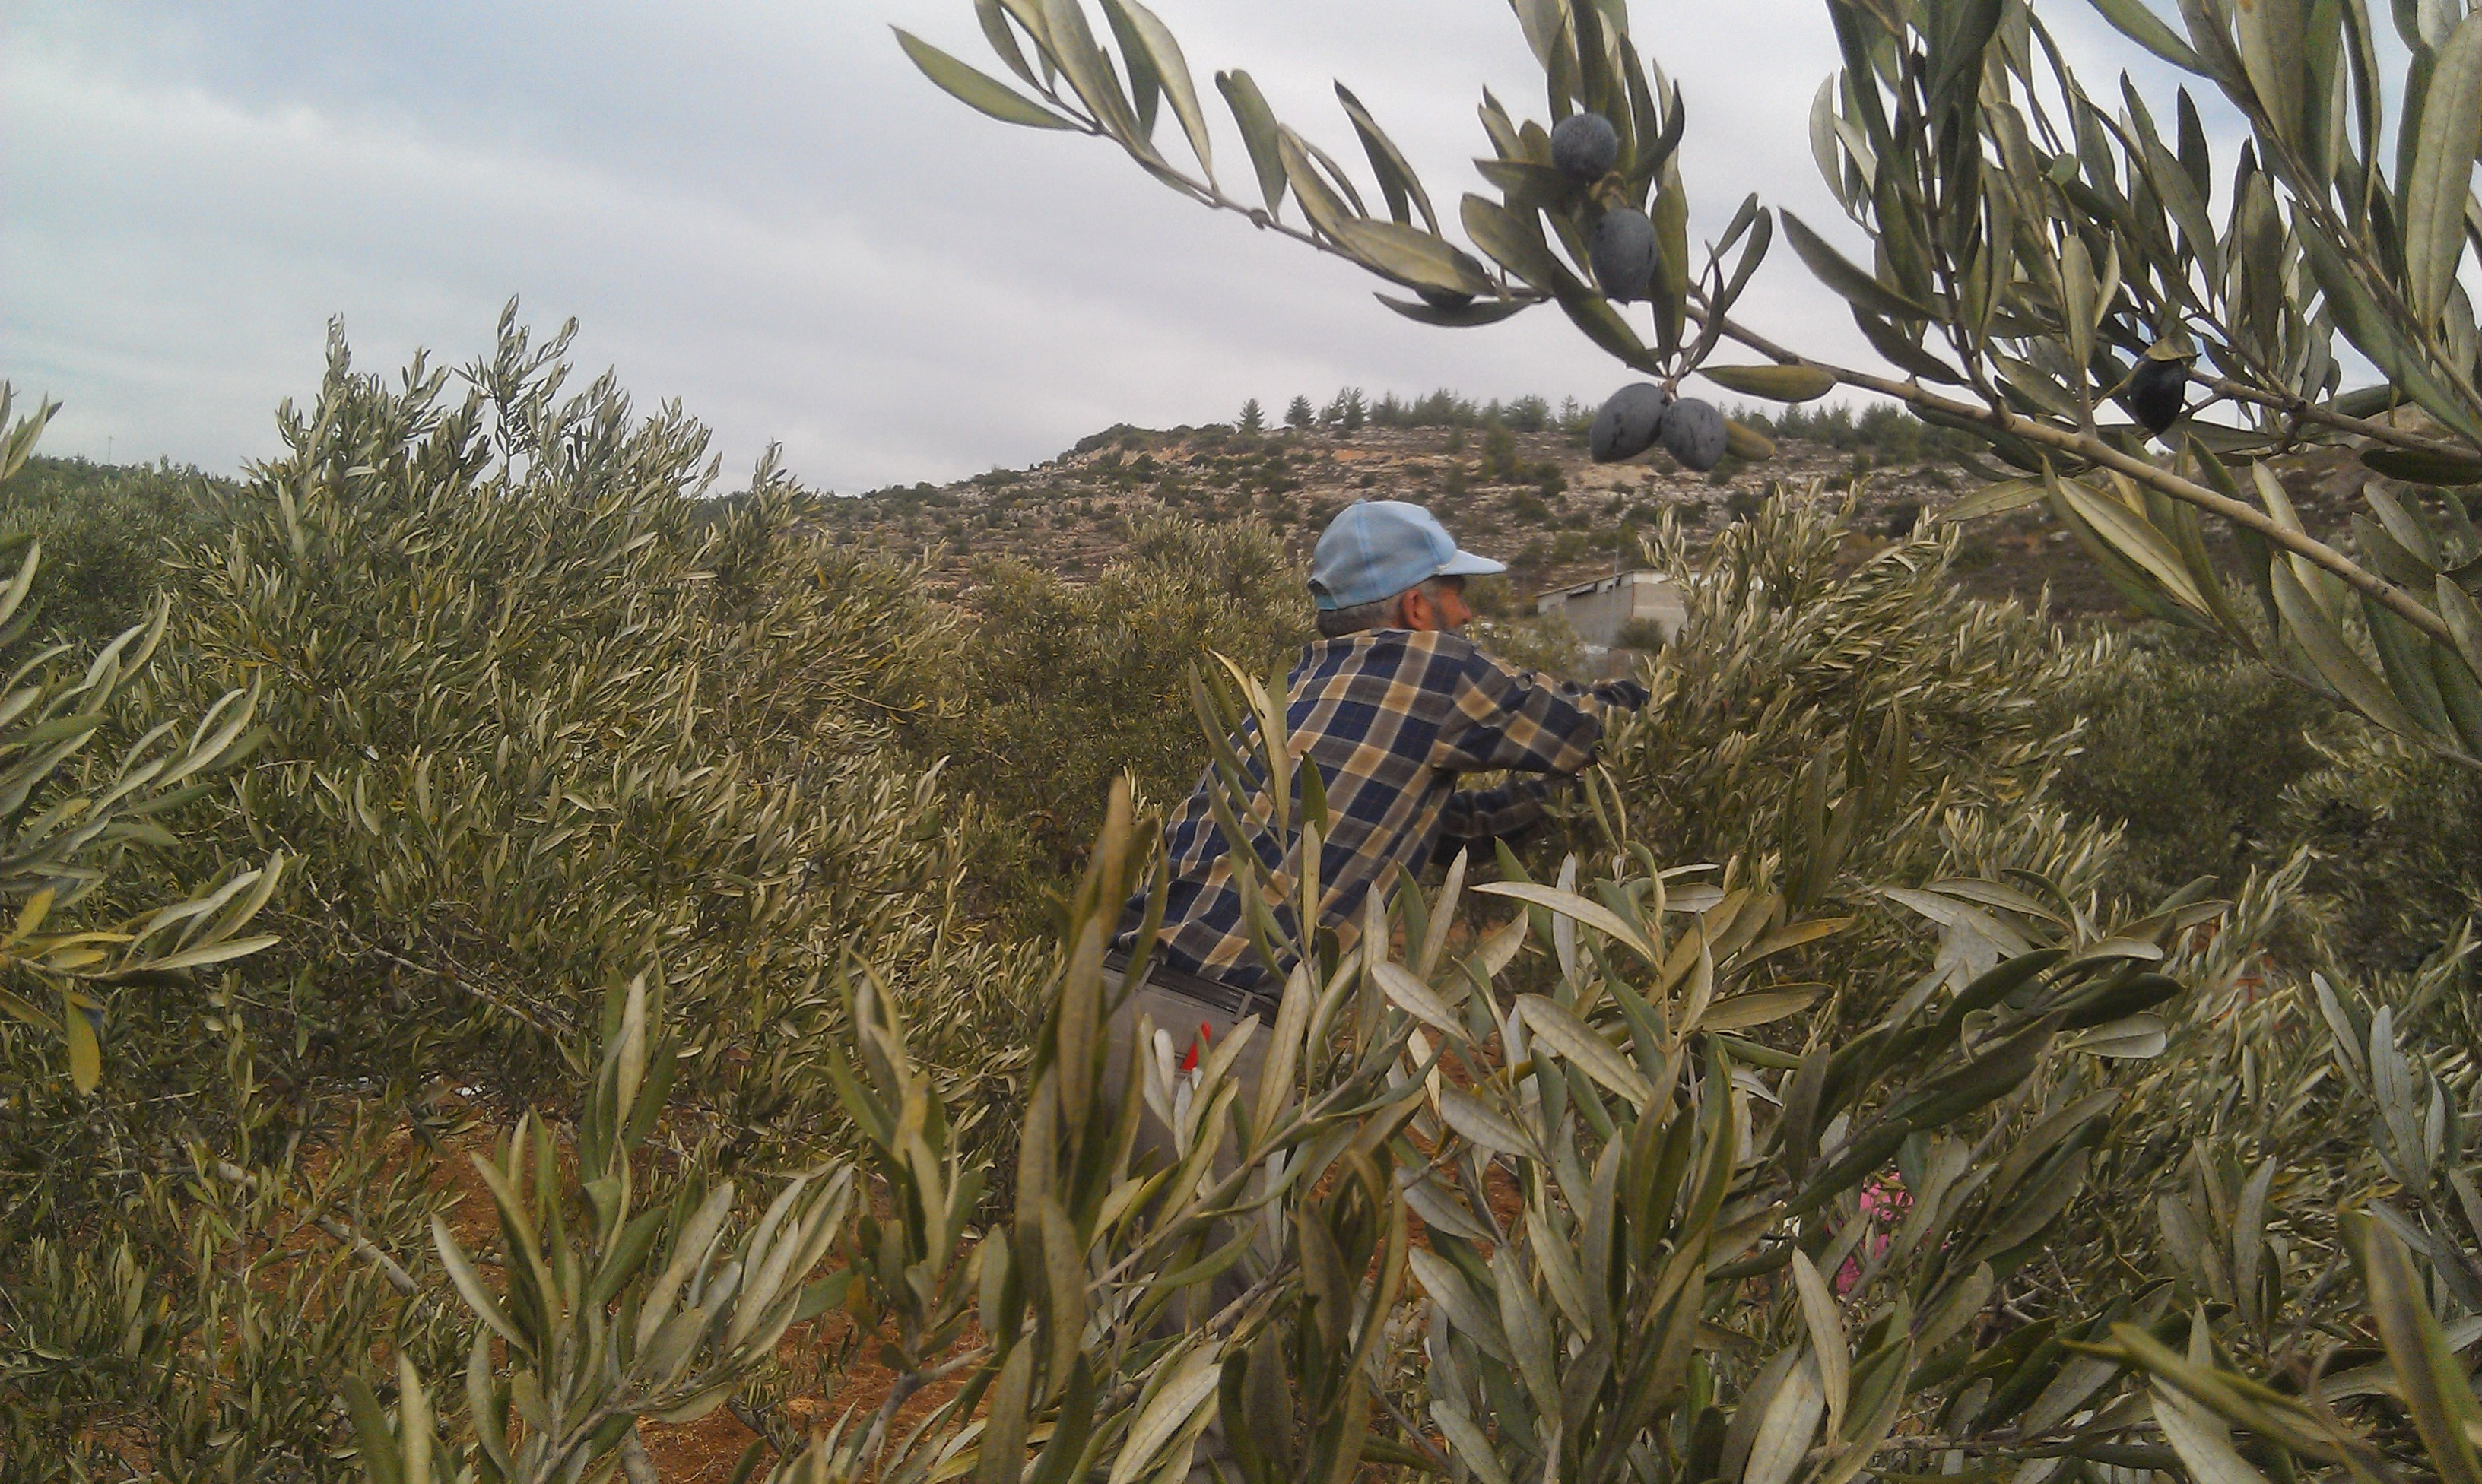 Family Tree – Olive Trees in Palestine